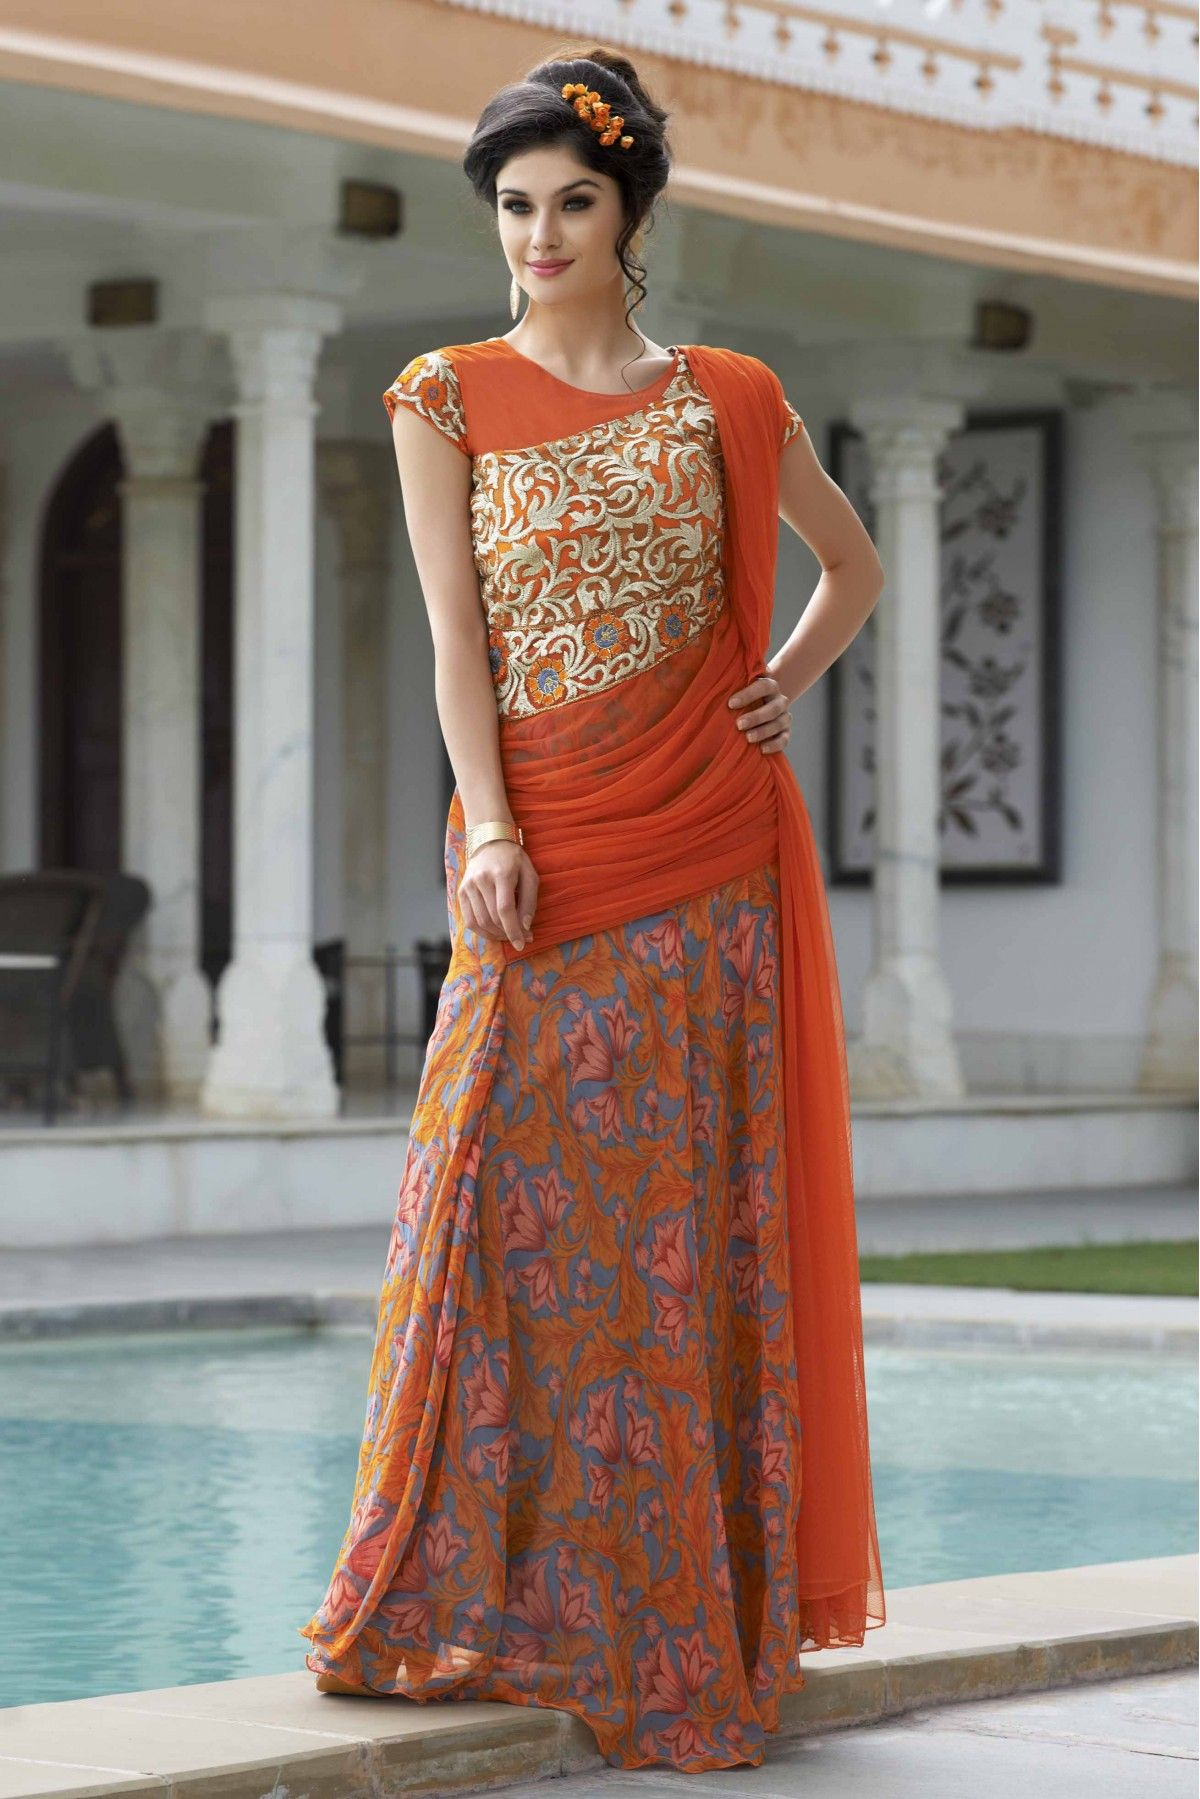 Orange Colour Georgette Fabric Designer Semi Stitched Flower Printed Gown Comes With Matching Dupatta. This Gown Is Crafted With Embroidery,Flower Printed Work. This Gown Comes as Semi Stitched so It ...